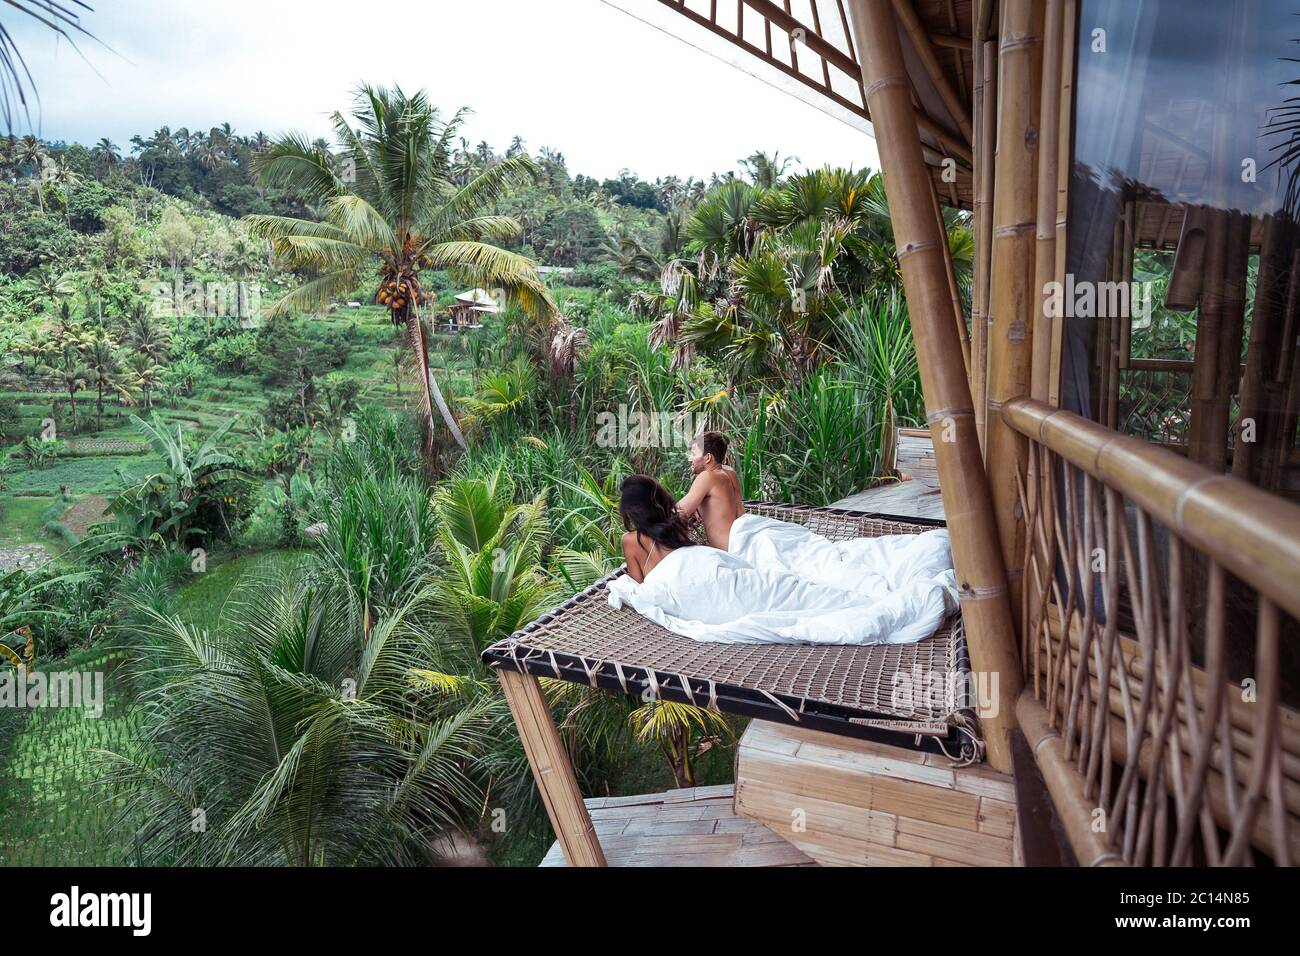 Couple Enjoying Morning Vacations On Tropical Jungle Villa Bungalow Looking Palms Relaxing Holiday At Bali Indonesia Couple On Their Honeymoon Stock Photo Alamy